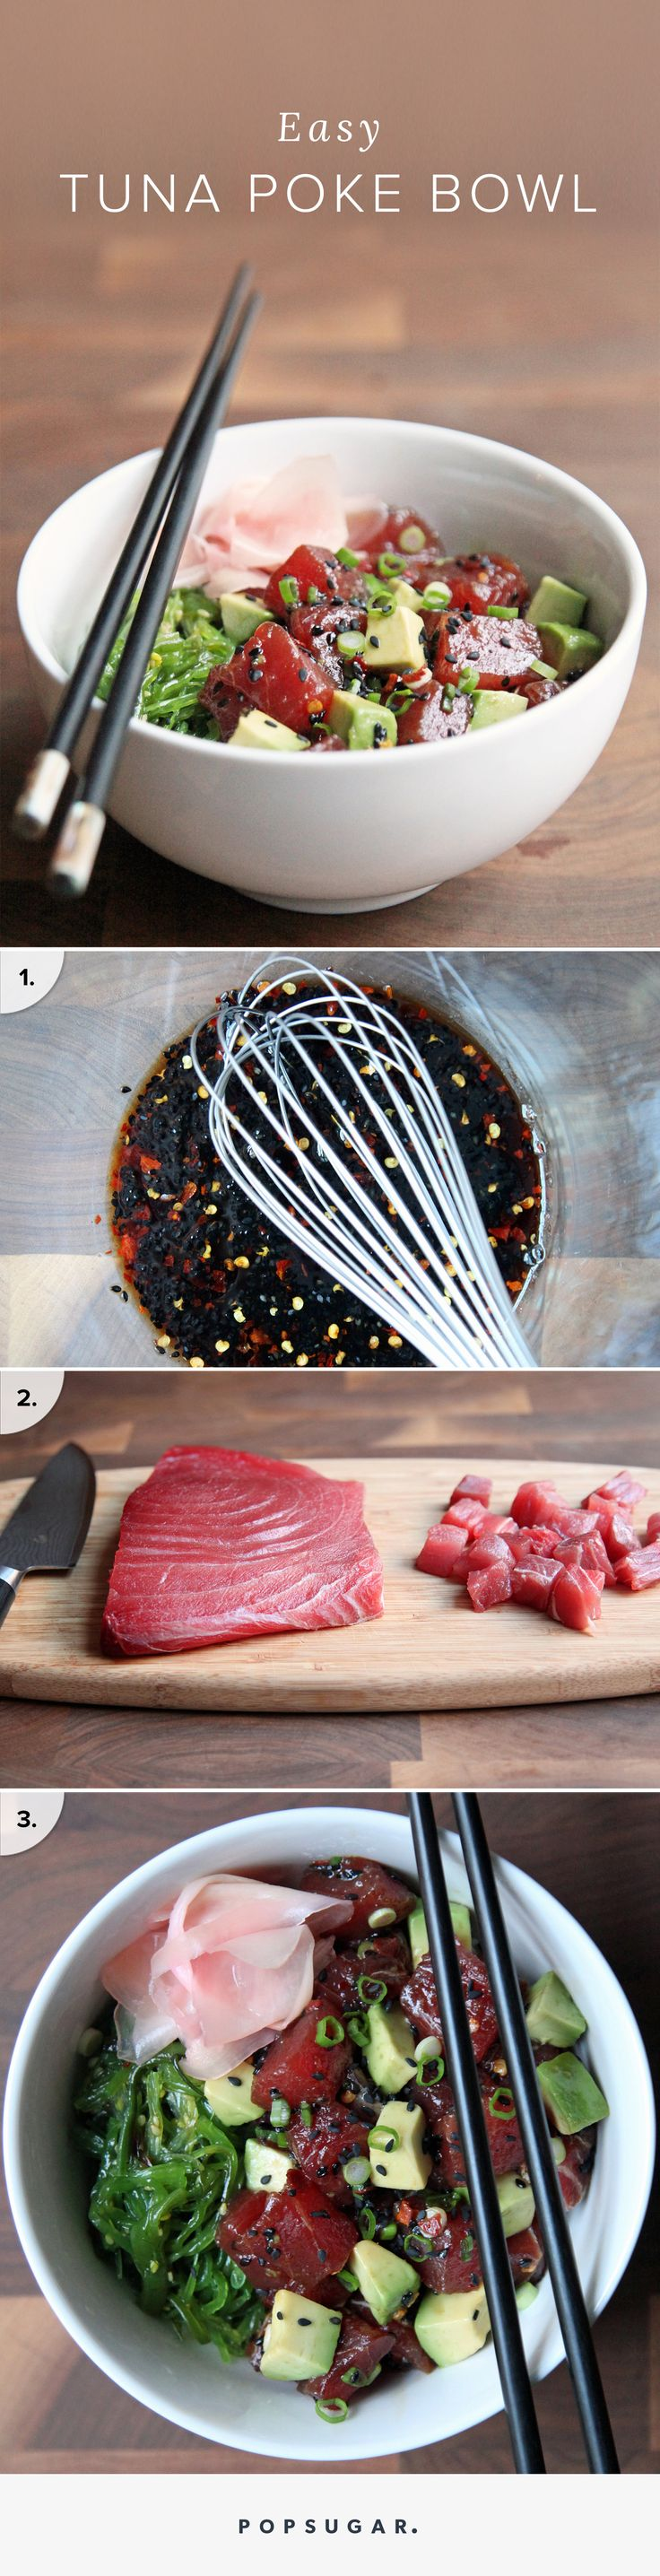 Get in on the Latest Dining Trend With This Easy Tuna Poke Bowl